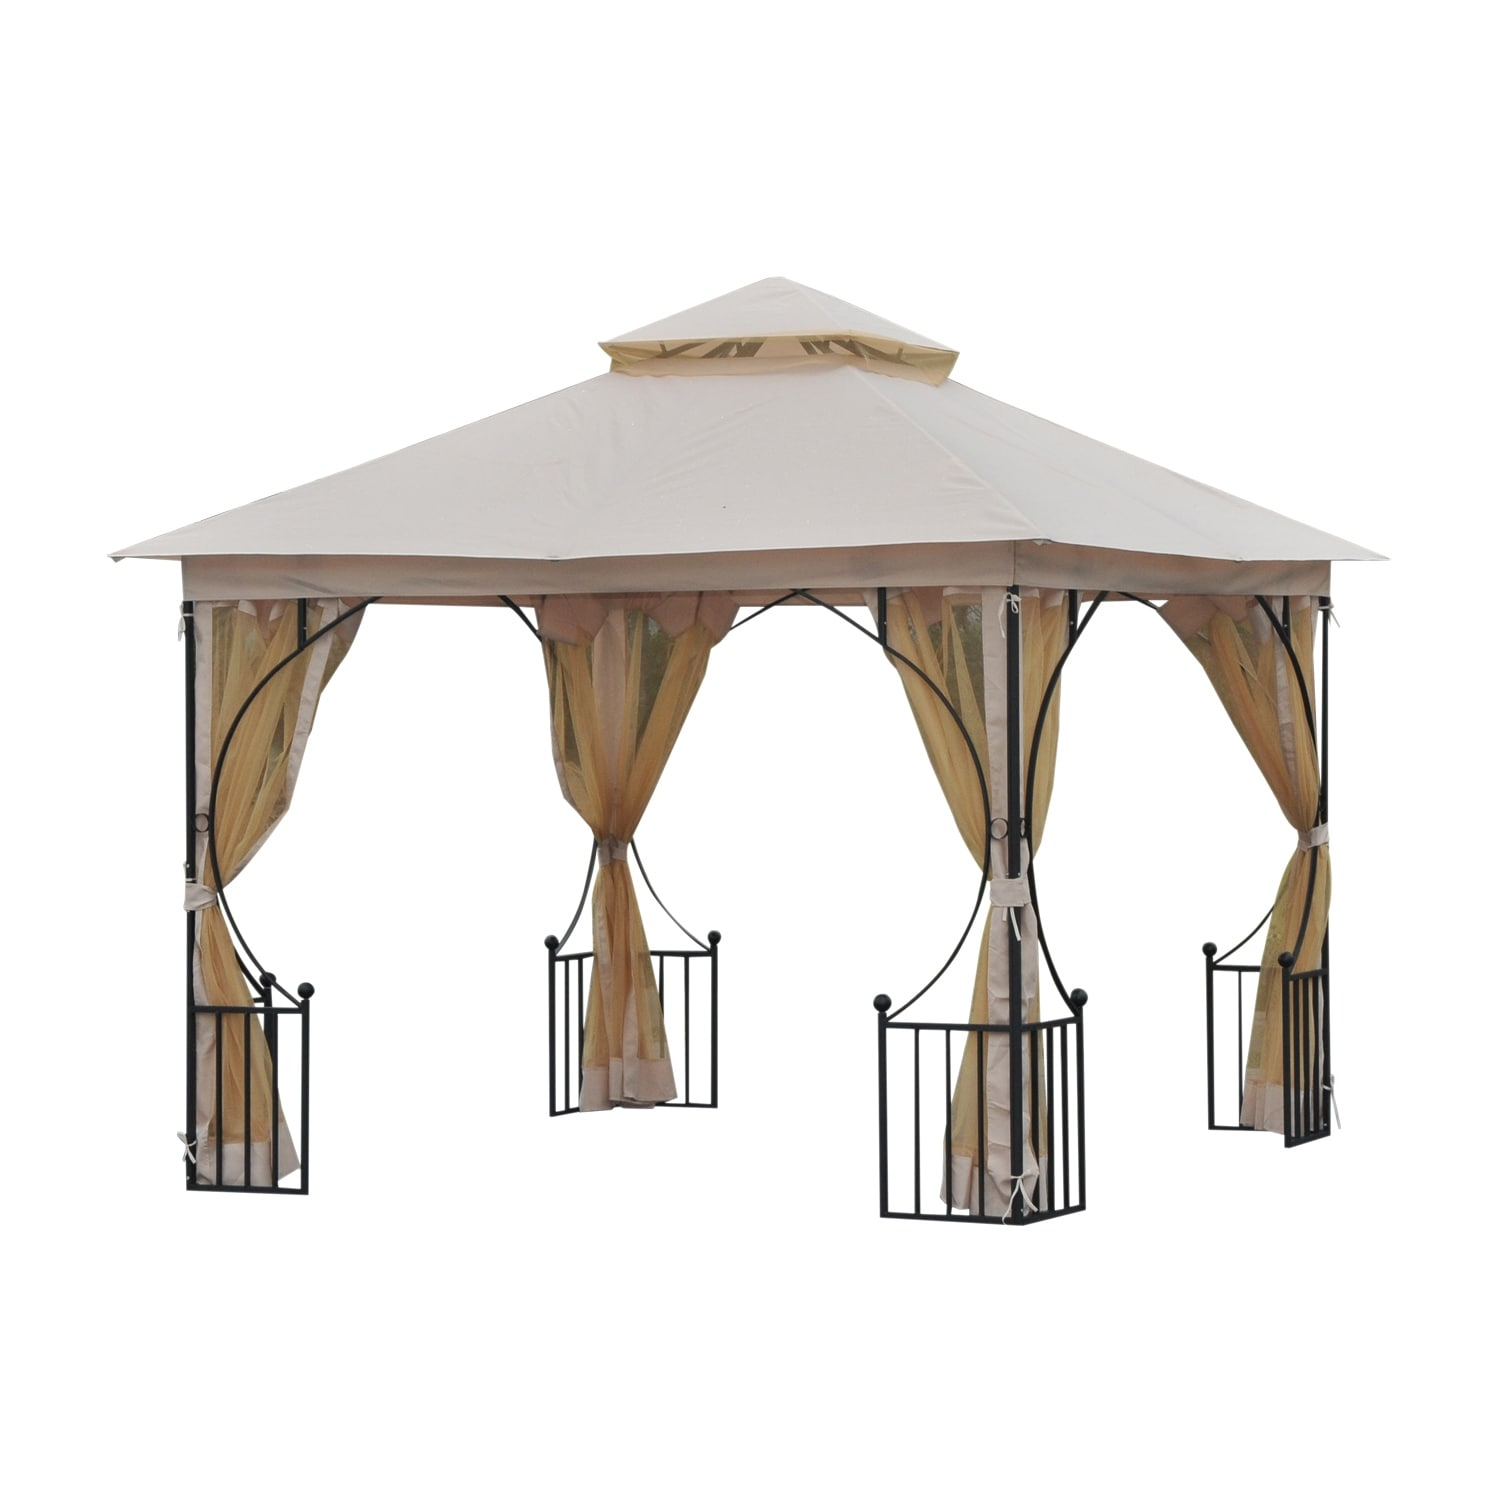 outsunny 10 x 10 steel outdoor garden gazebo canopy with mesh netting walls a roof resistant to uv rays